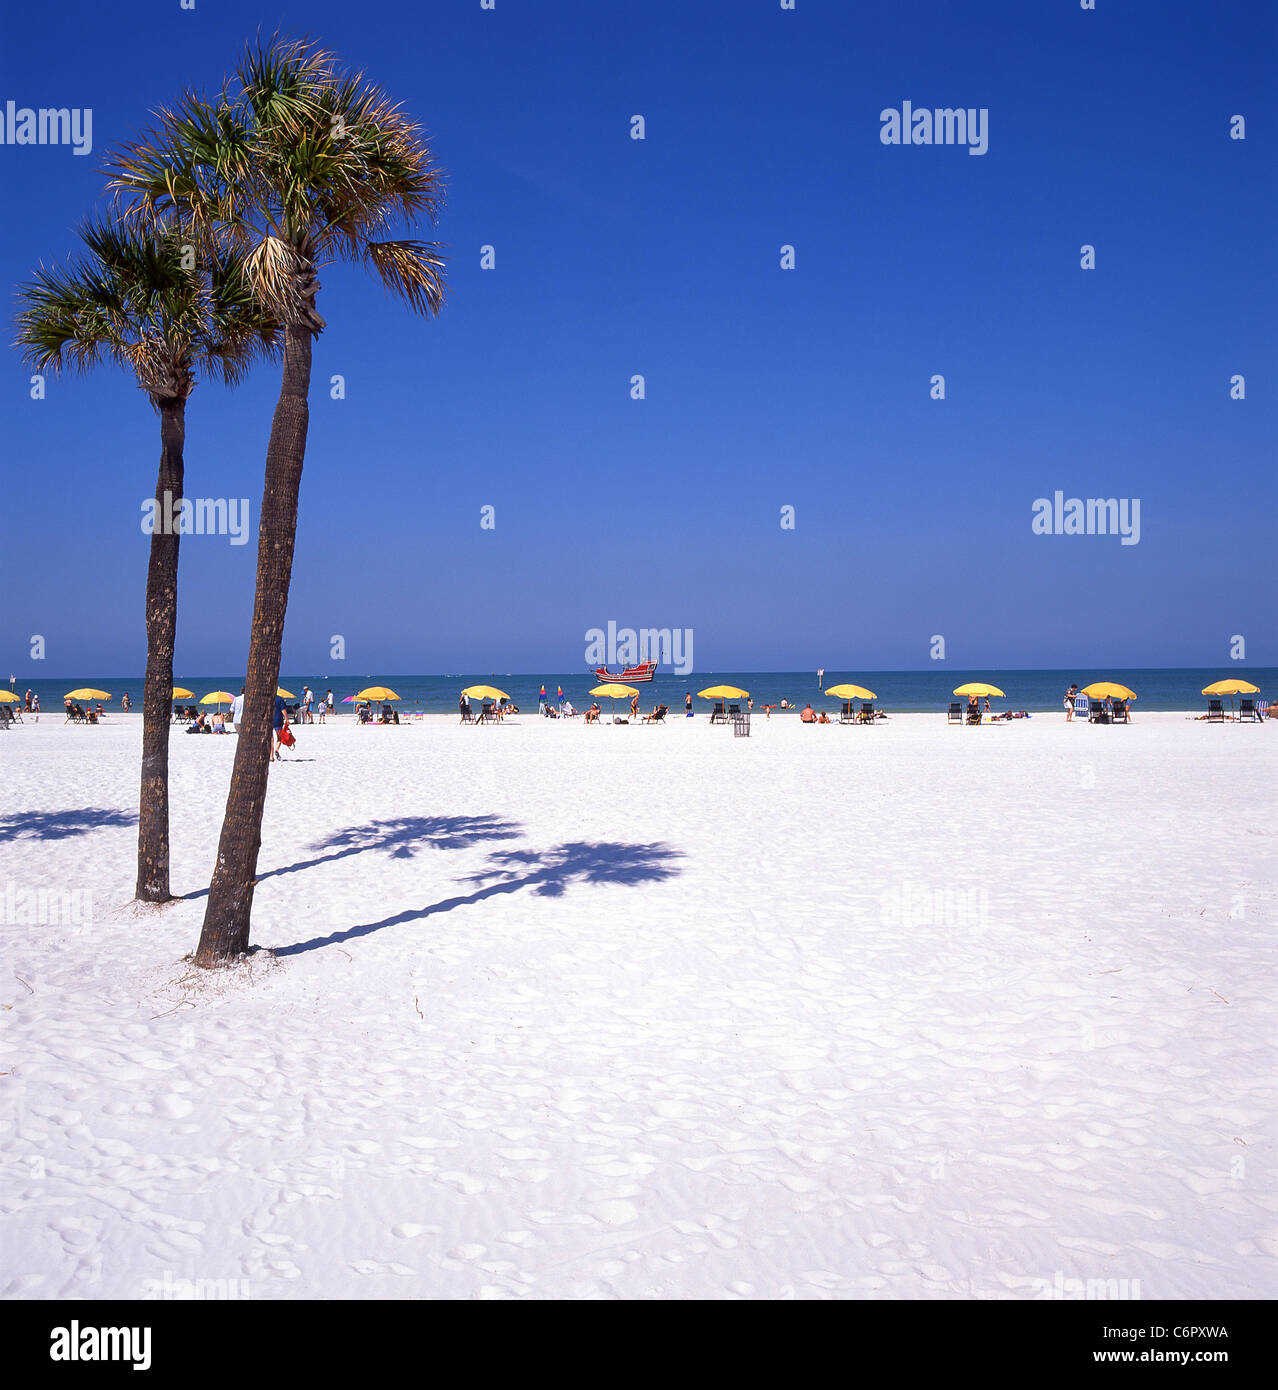 Beach view, Clearwater, Florida, United States of America - Stock Image